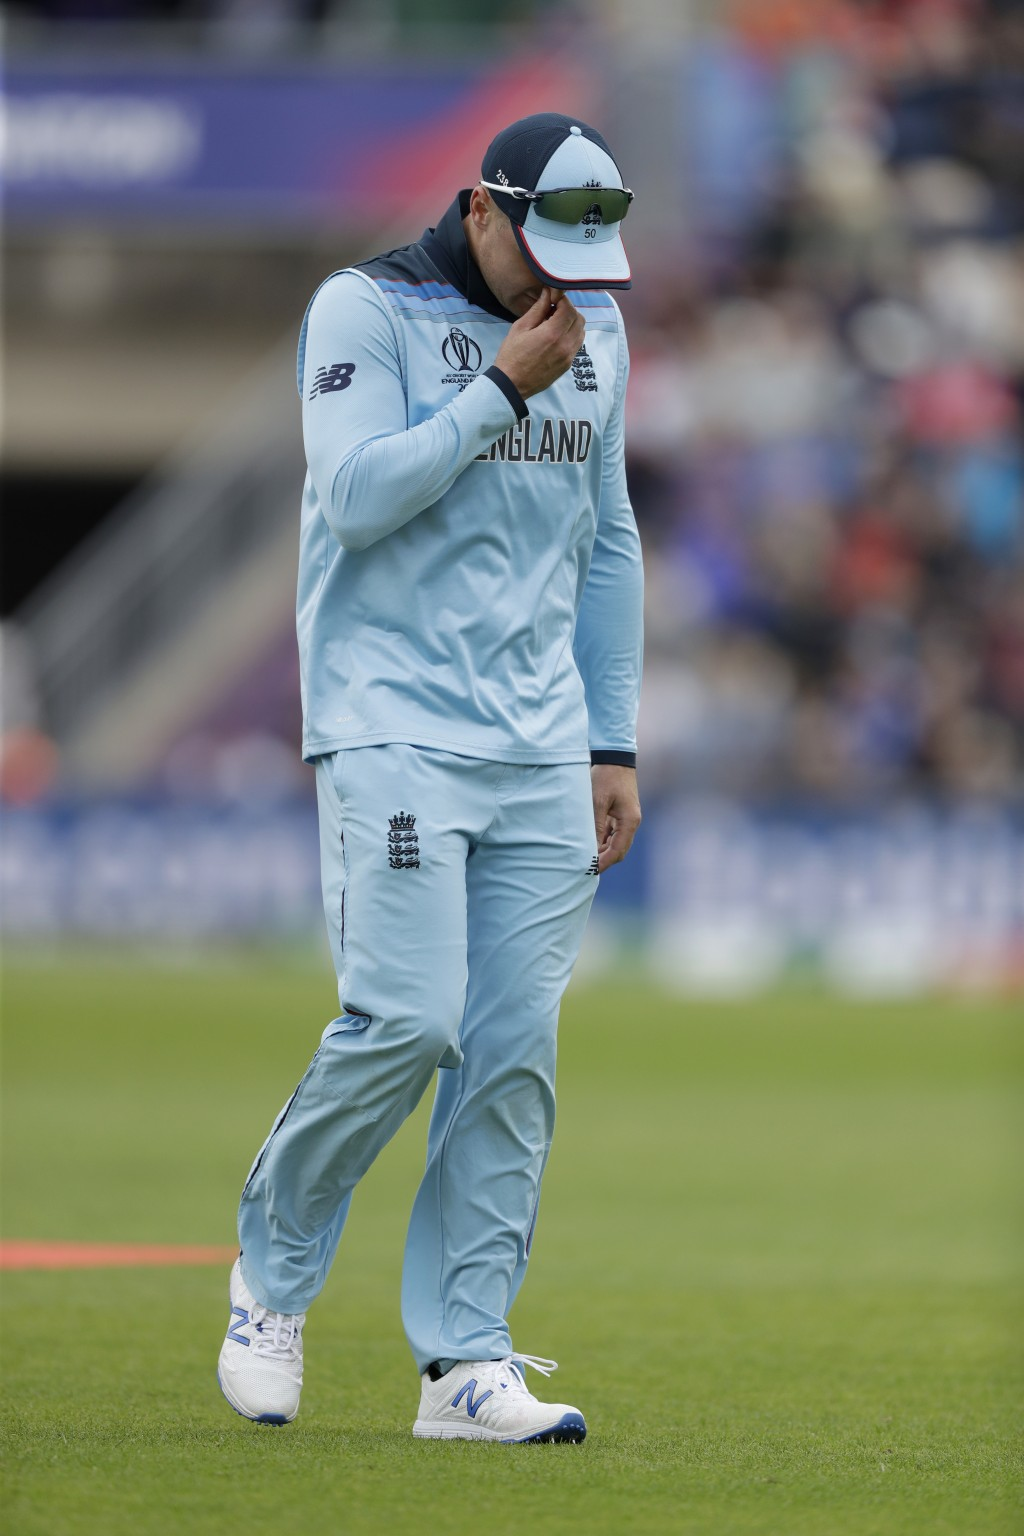 England's Jason Roy walks off the field of play with a leg injury during the Cricket World Cup match between England and West Indies at the Hampshire